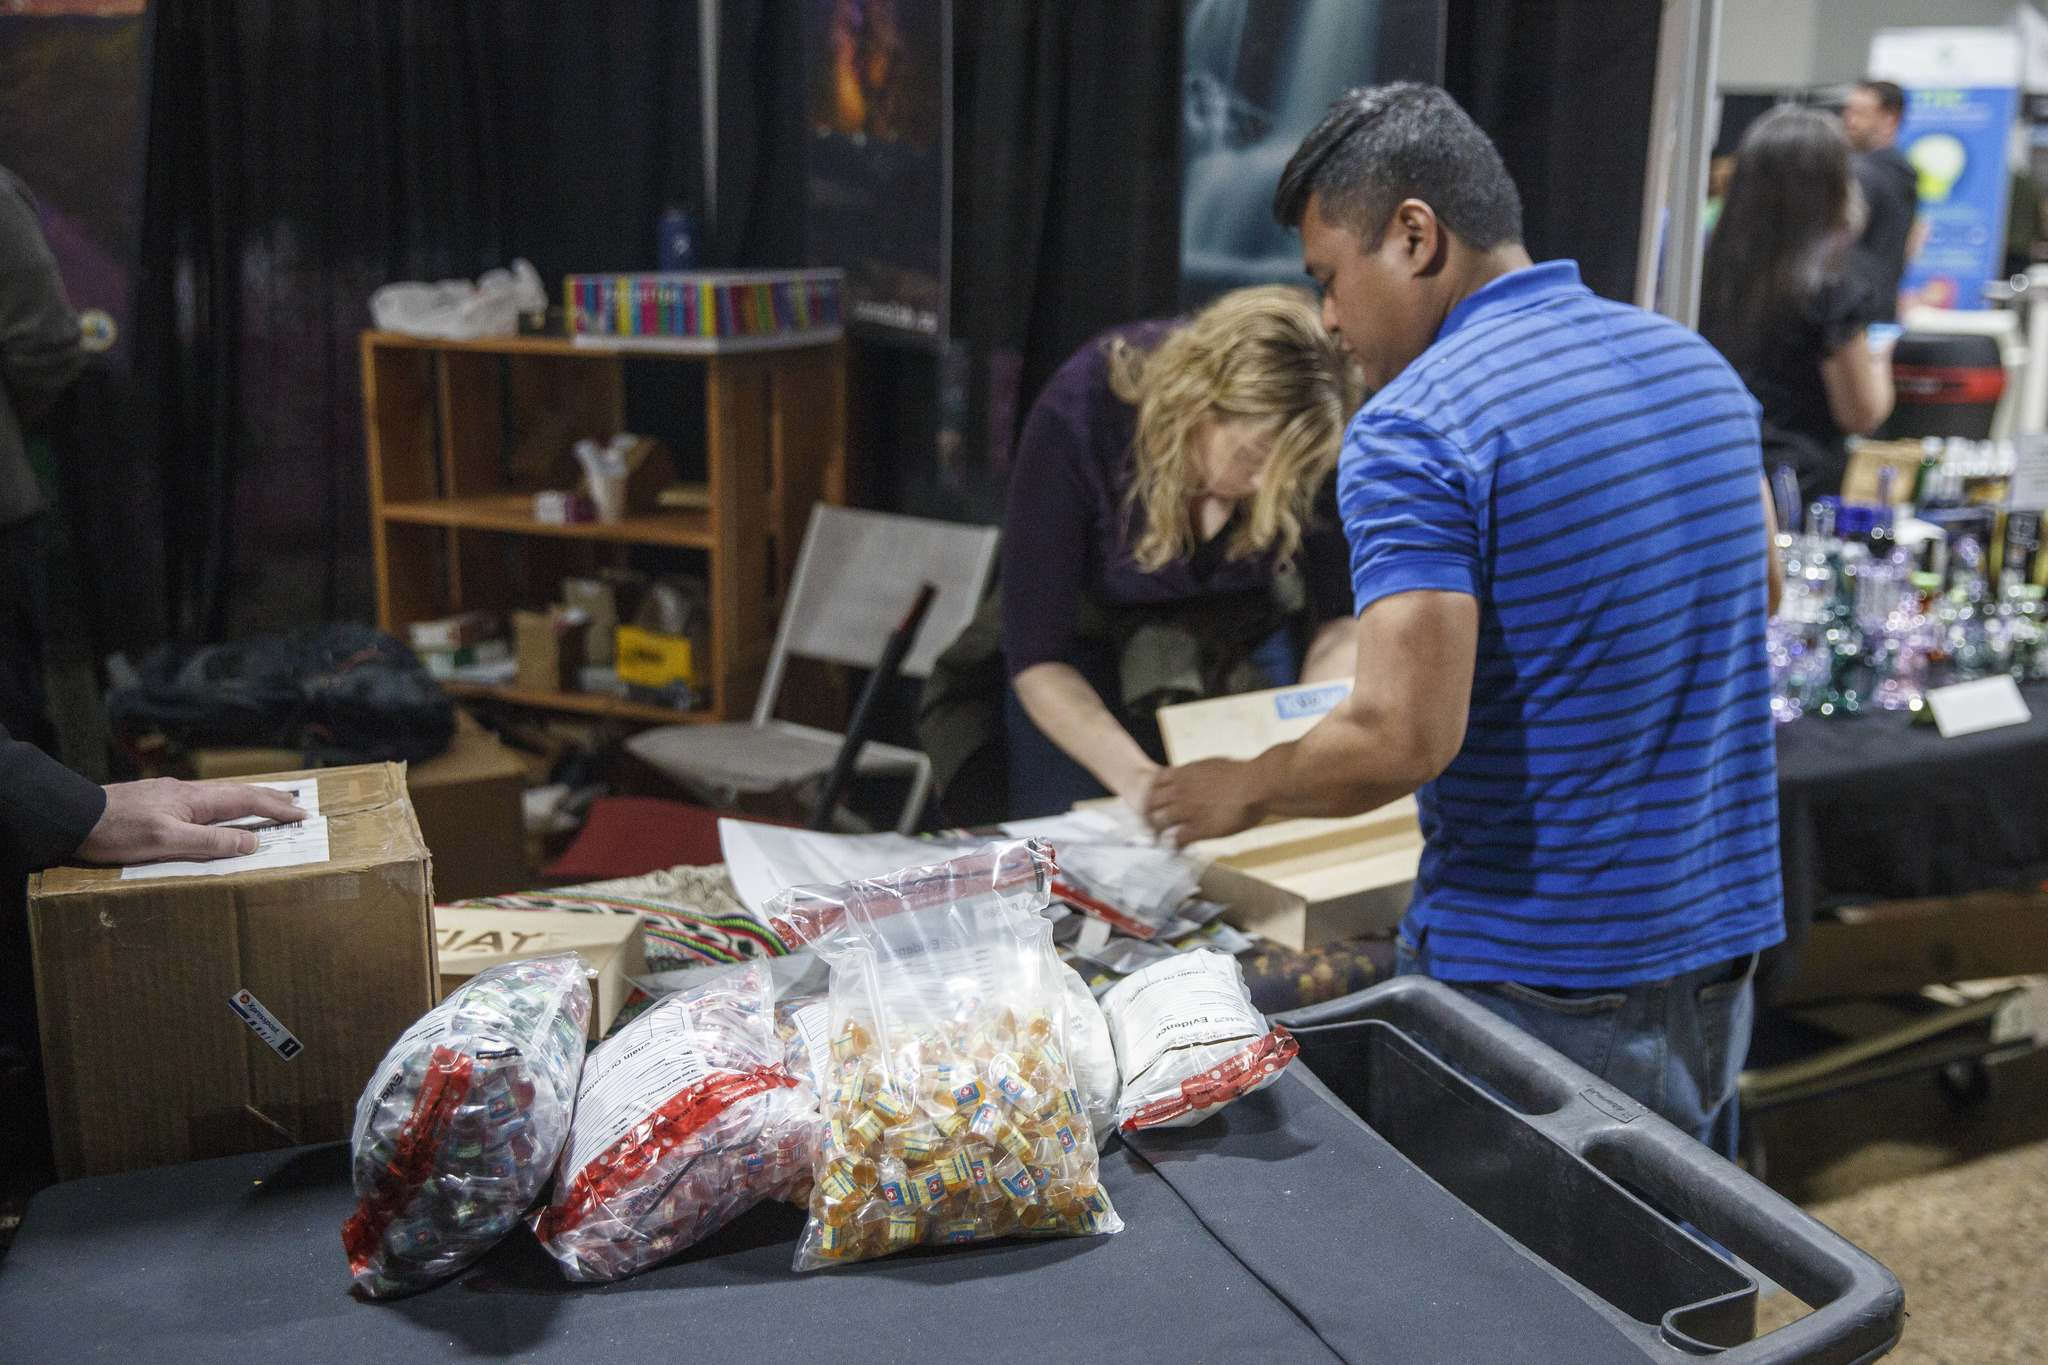 Investigators pack up illegal edible products that contain THC in the Kootenay Labs Booth at the Hempfest Canada Expo in Winnipeg in February. The sellers were ticketed and fined. (Mike Deal / Winnipeg Free Press files)